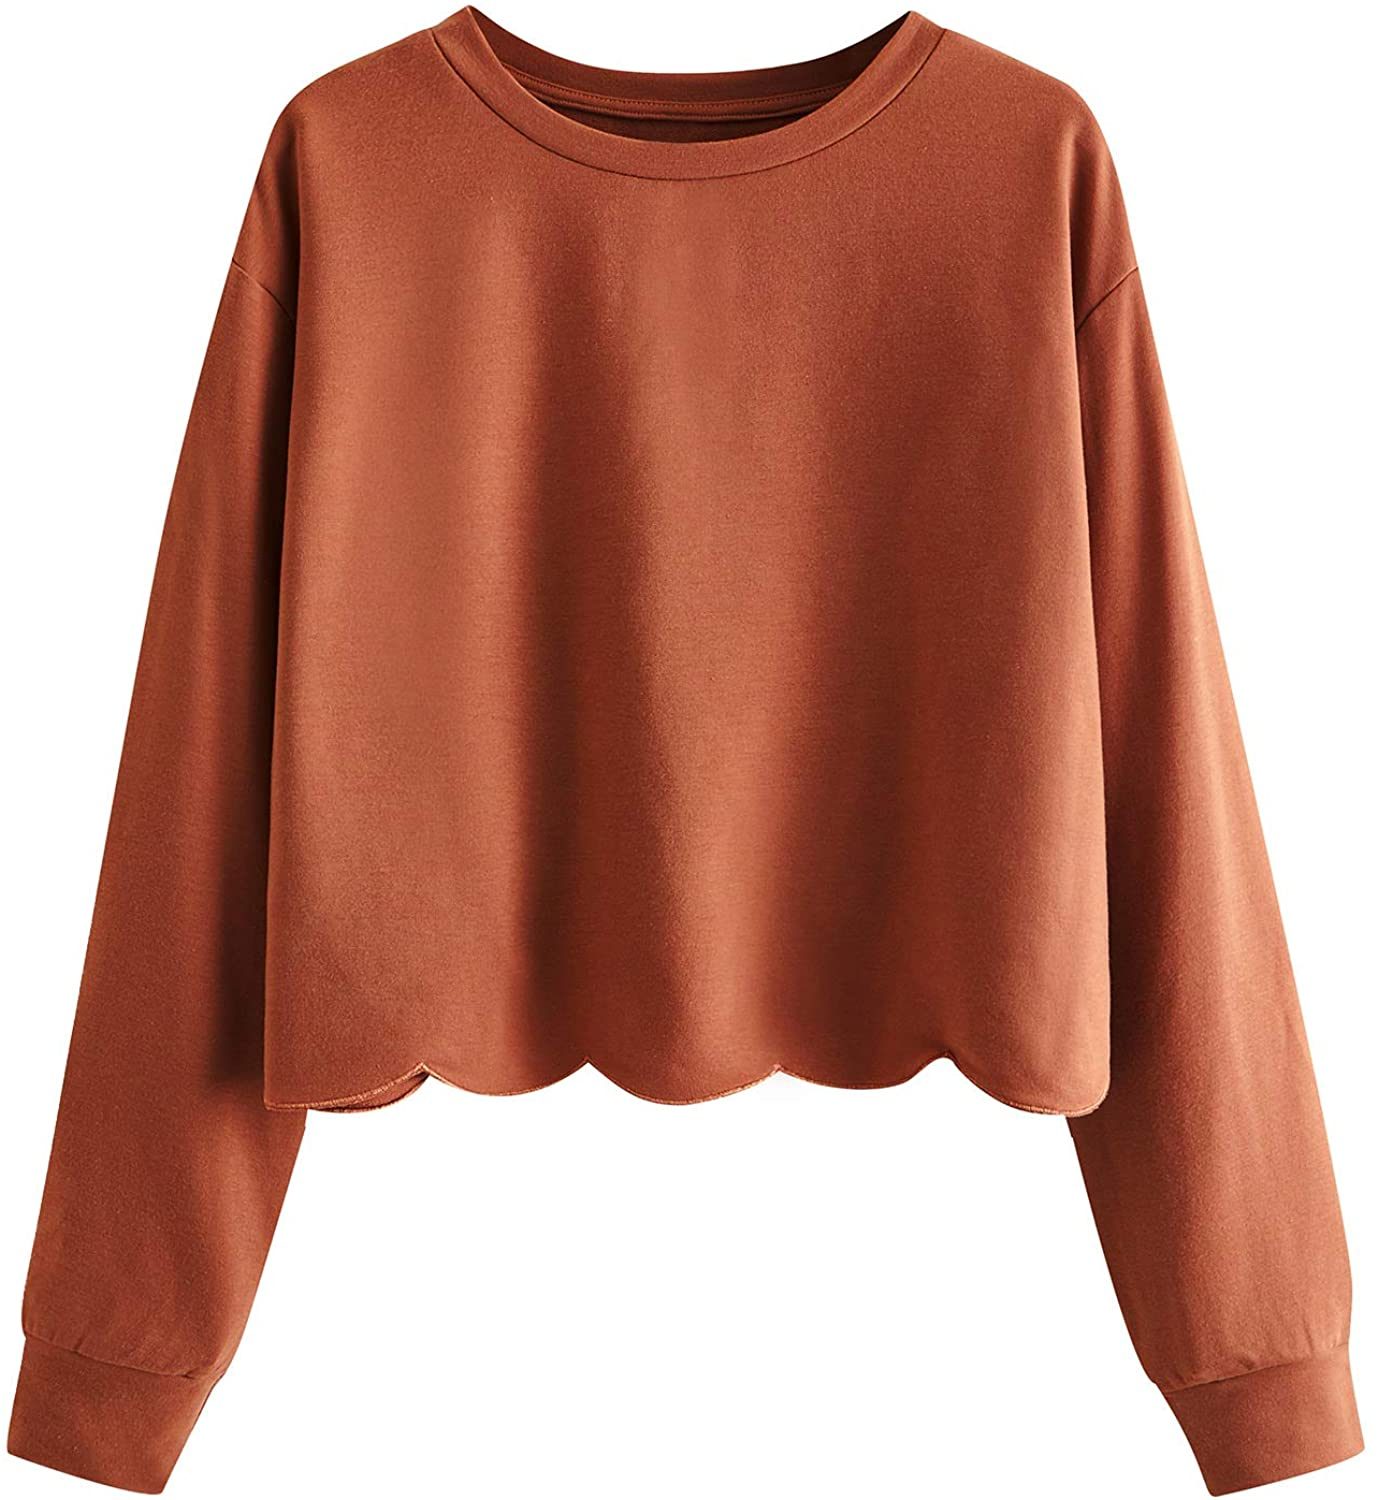 Romwe Casual Scalloped Sweatshirt awesome pair for target sweater pants